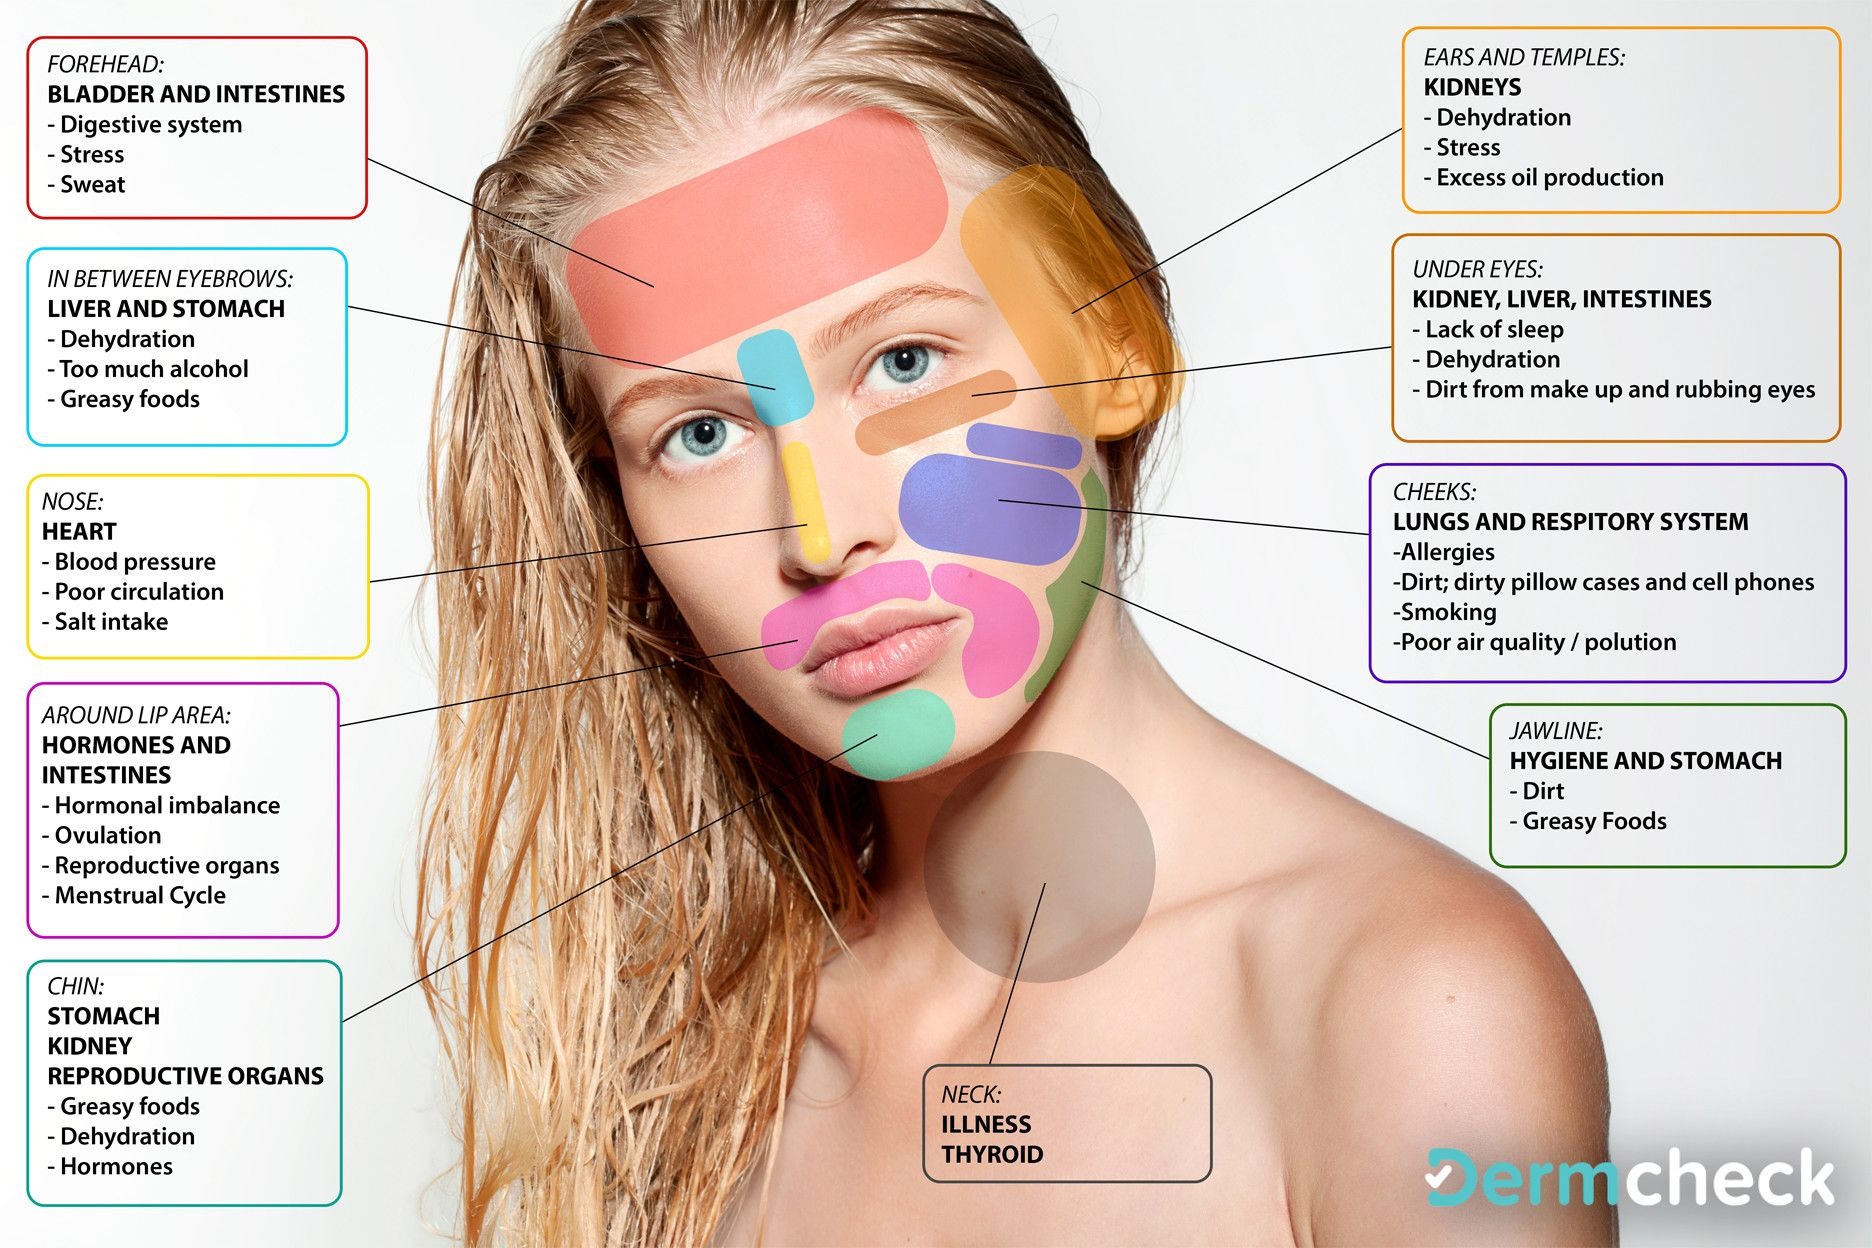 chinese face map pimple face mapping skin mapping face mapping spots facial acne [ 1872 x 1248 Pixel ]